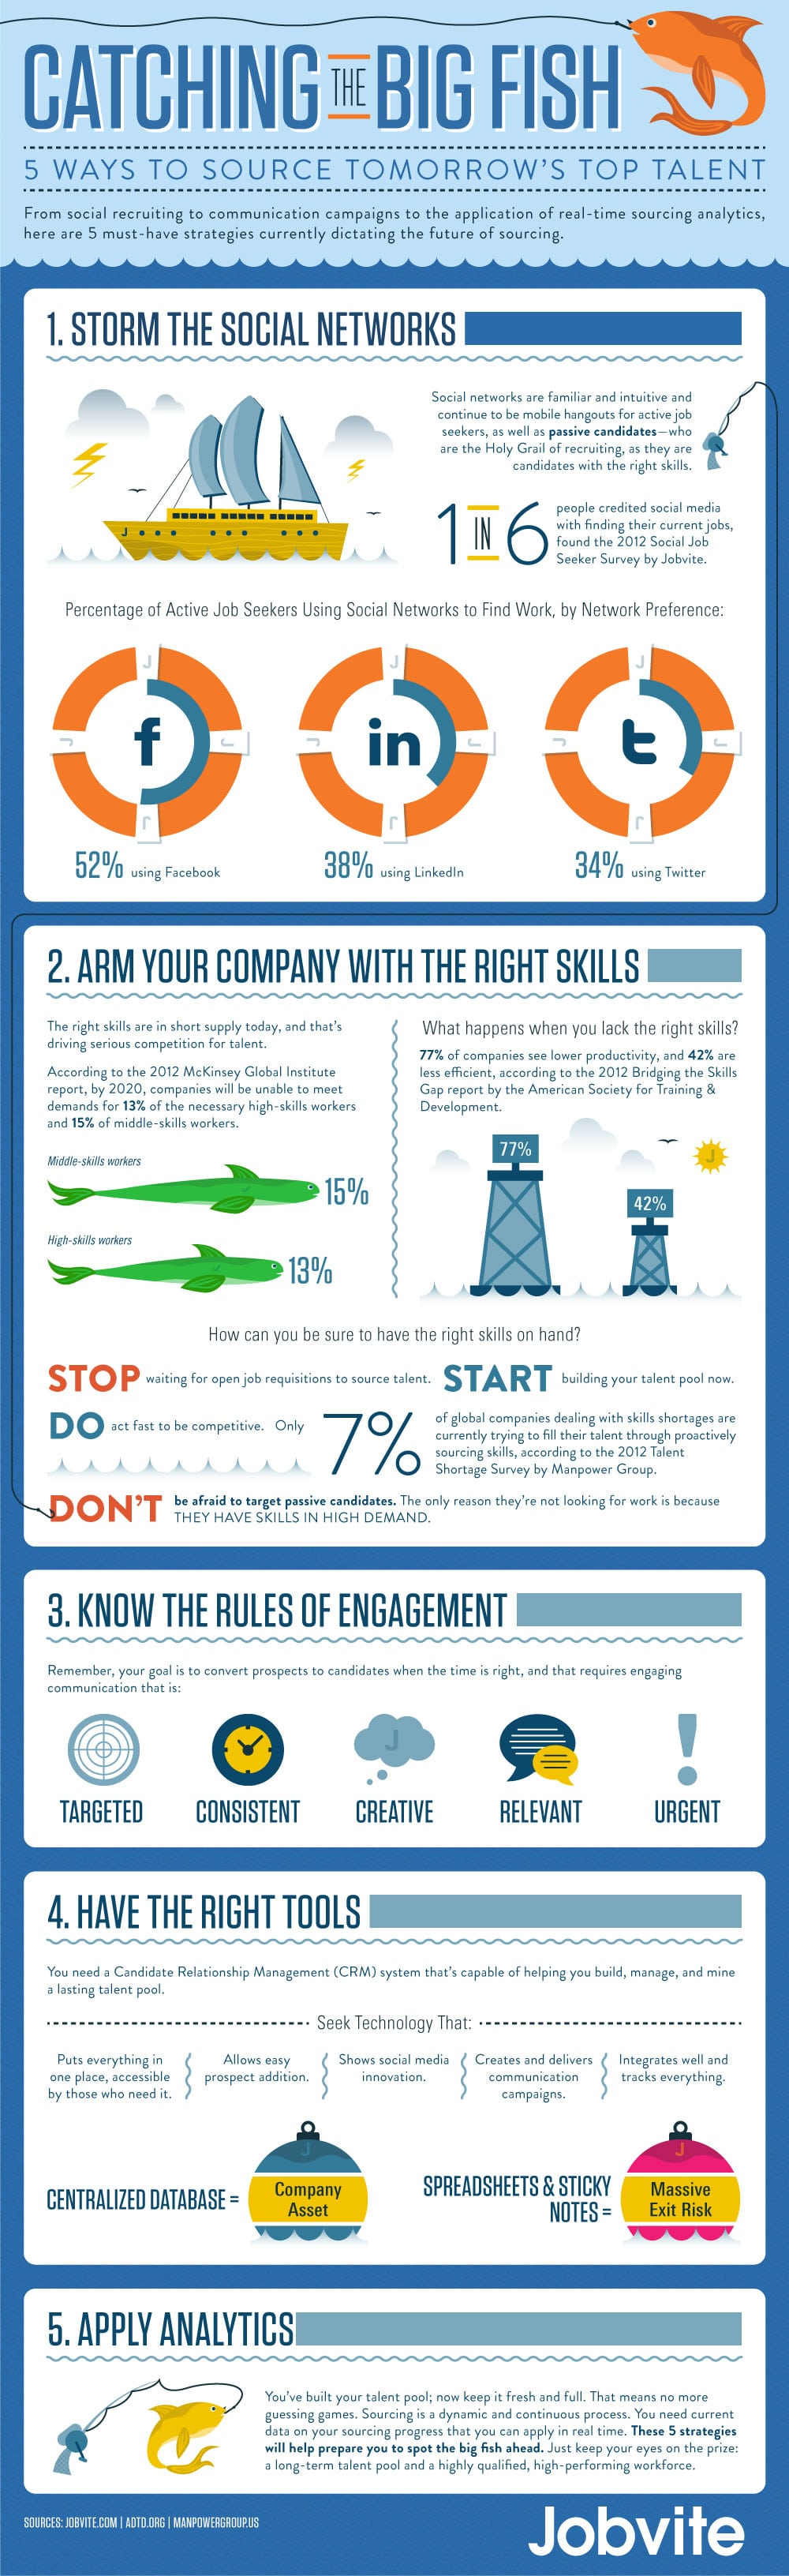 social-recruiting-top-talent-infographic